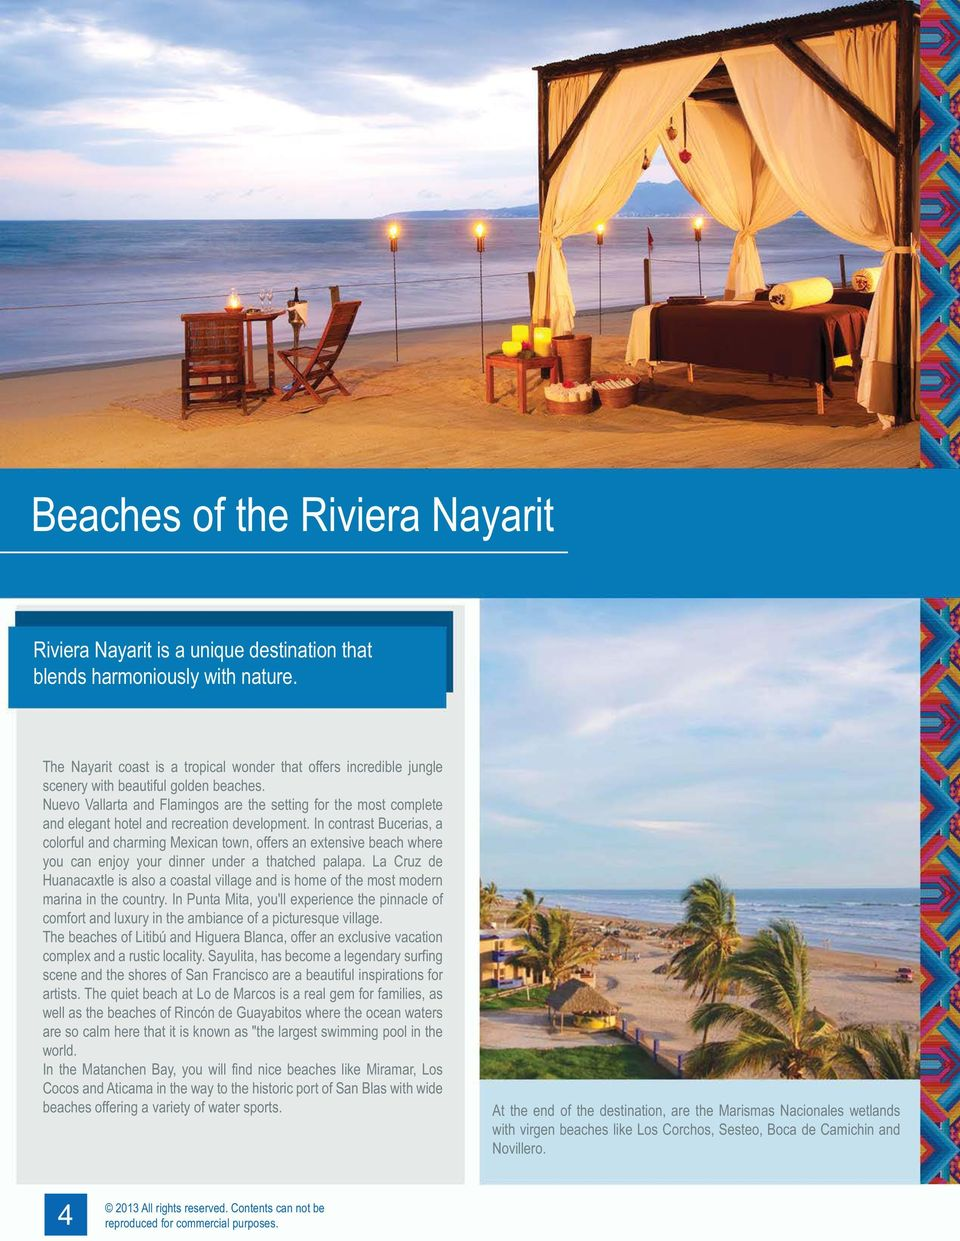 Nuevo Vallarta and Flamingos are the setting for the most complete and elegant hotel and recreation development.